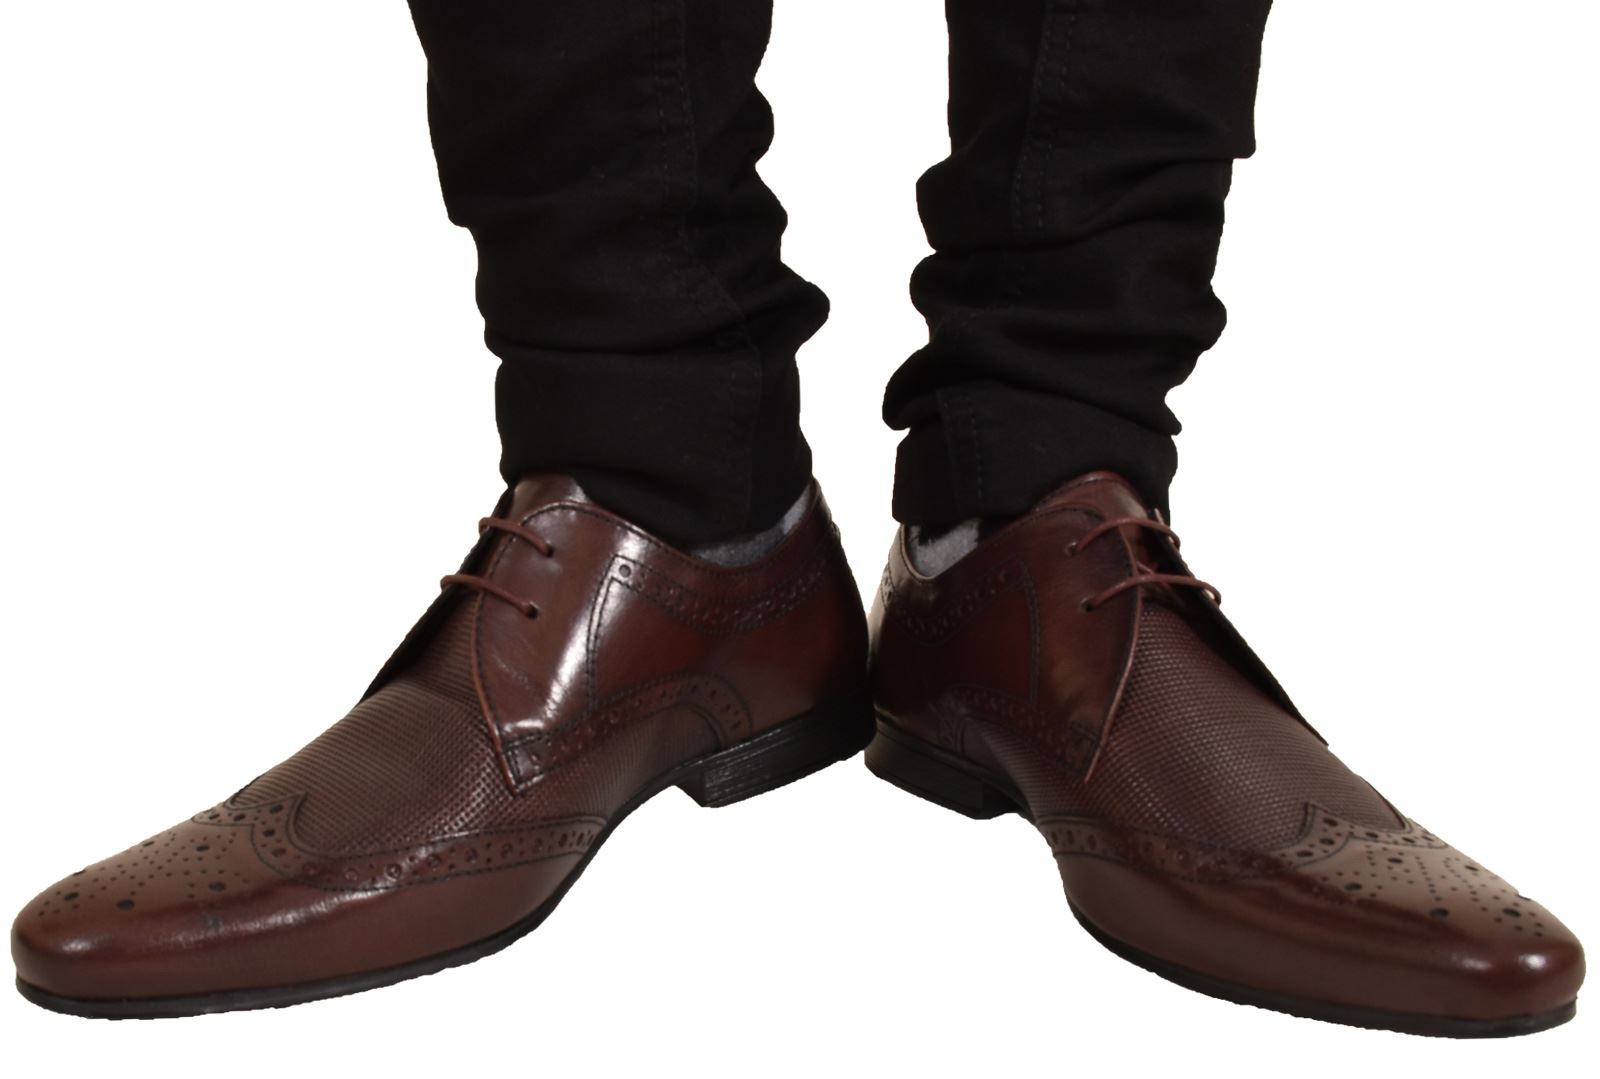 Mens-UK-Style-Leather-Lining-Formal-Office-Wedding-Smart-Work-Brogue-Shoes thumbnail 128